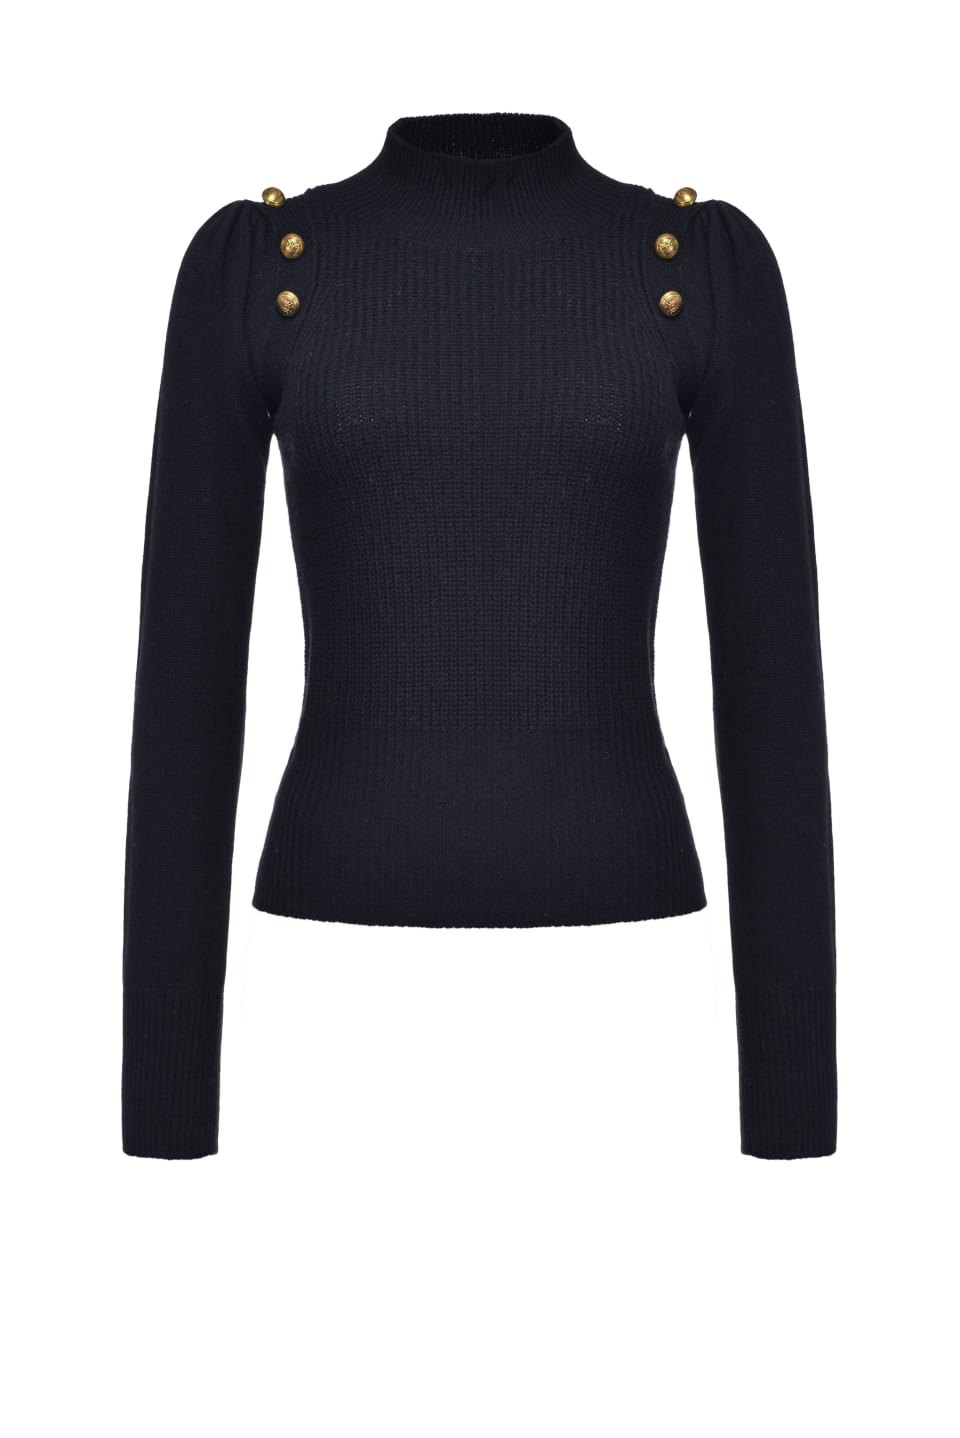 Sailor top with gold buttons - Pinko